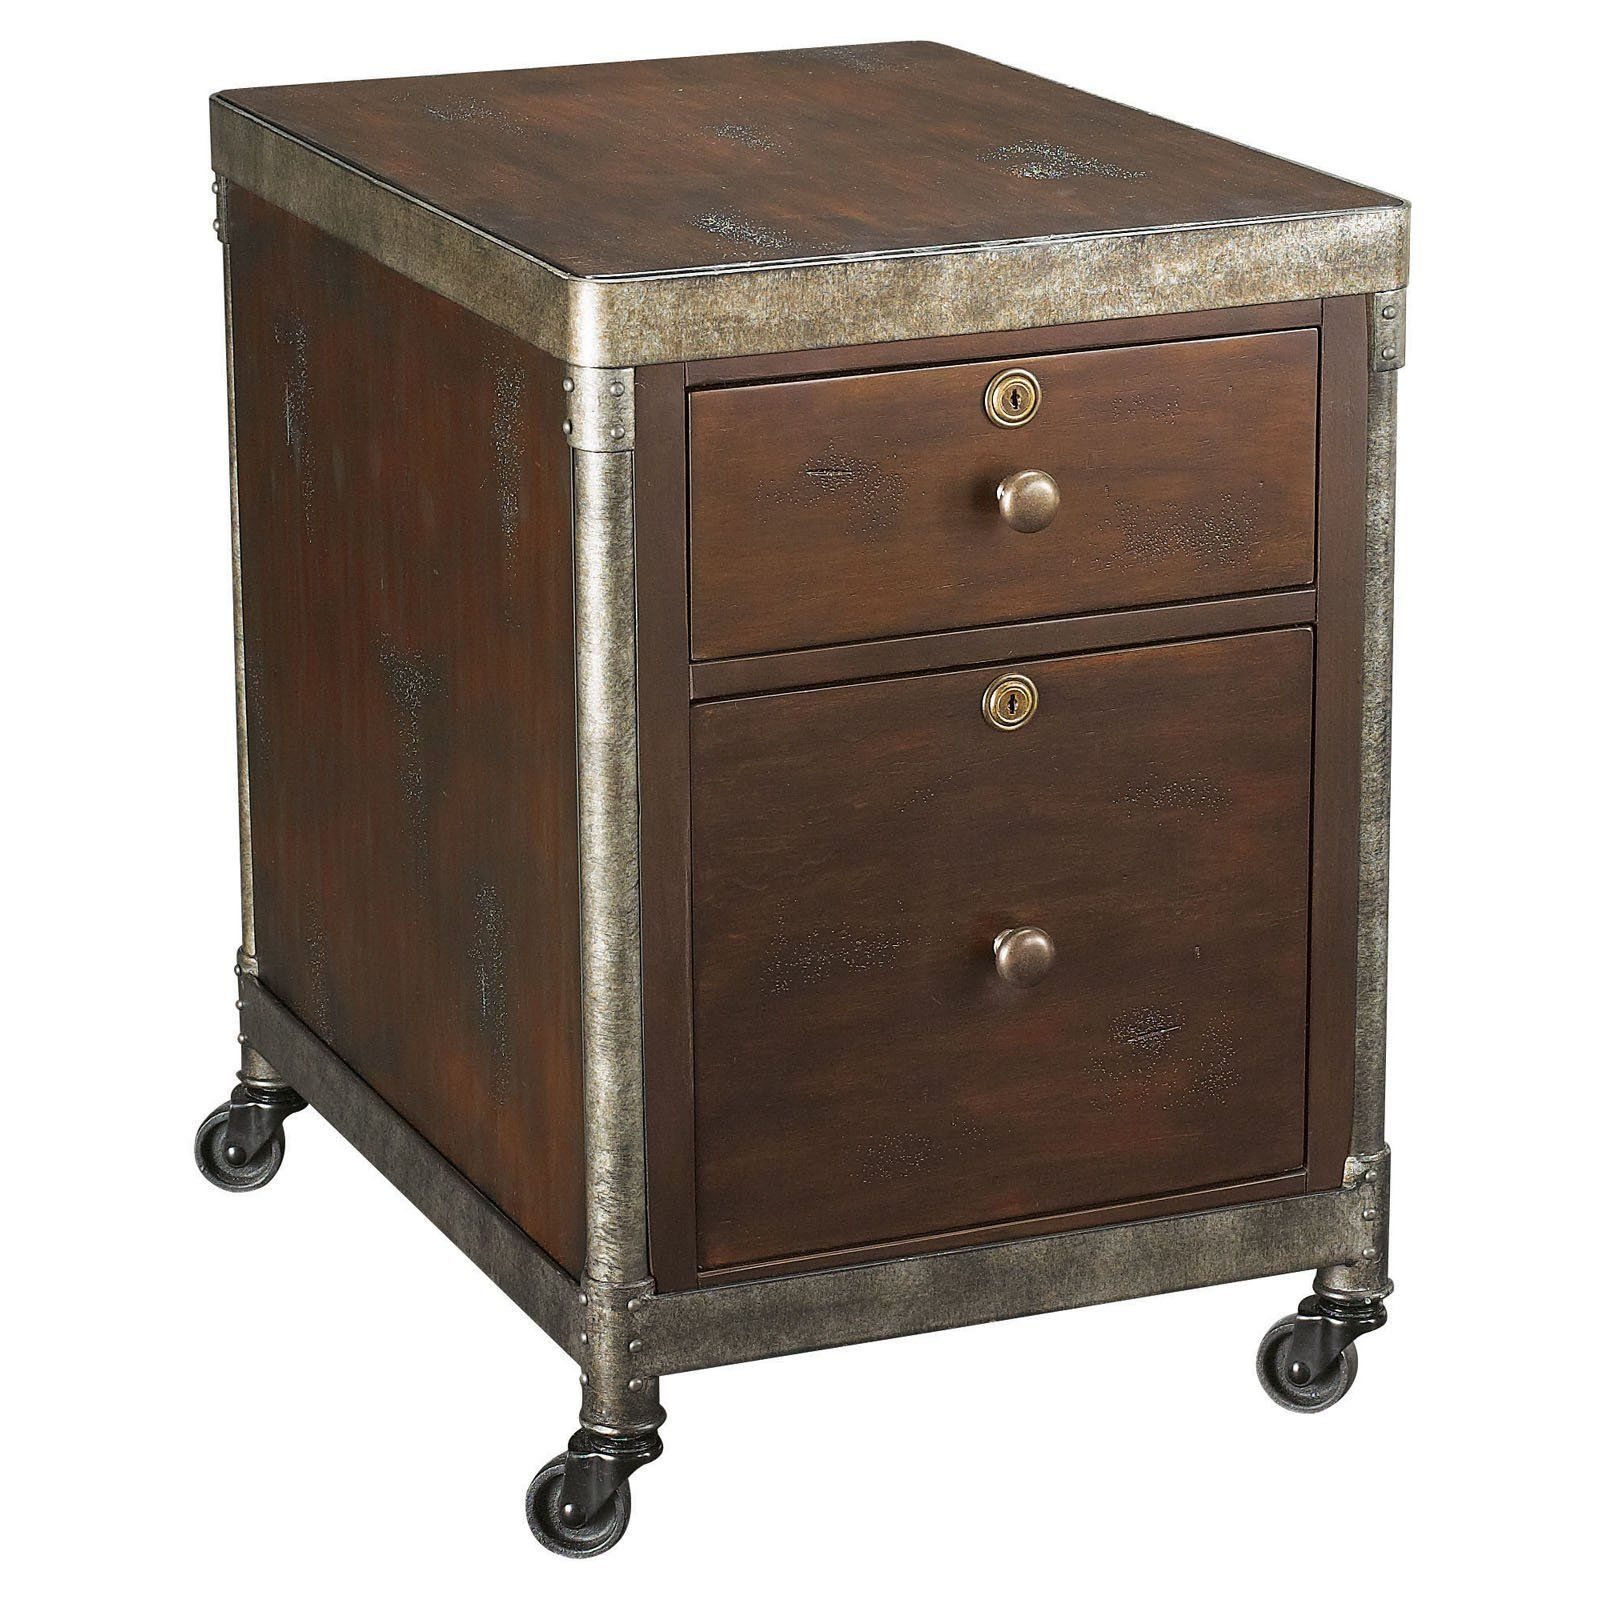 Hammary structure 2 drawer rolling file cabinet heavily distressed brown t3002046 00